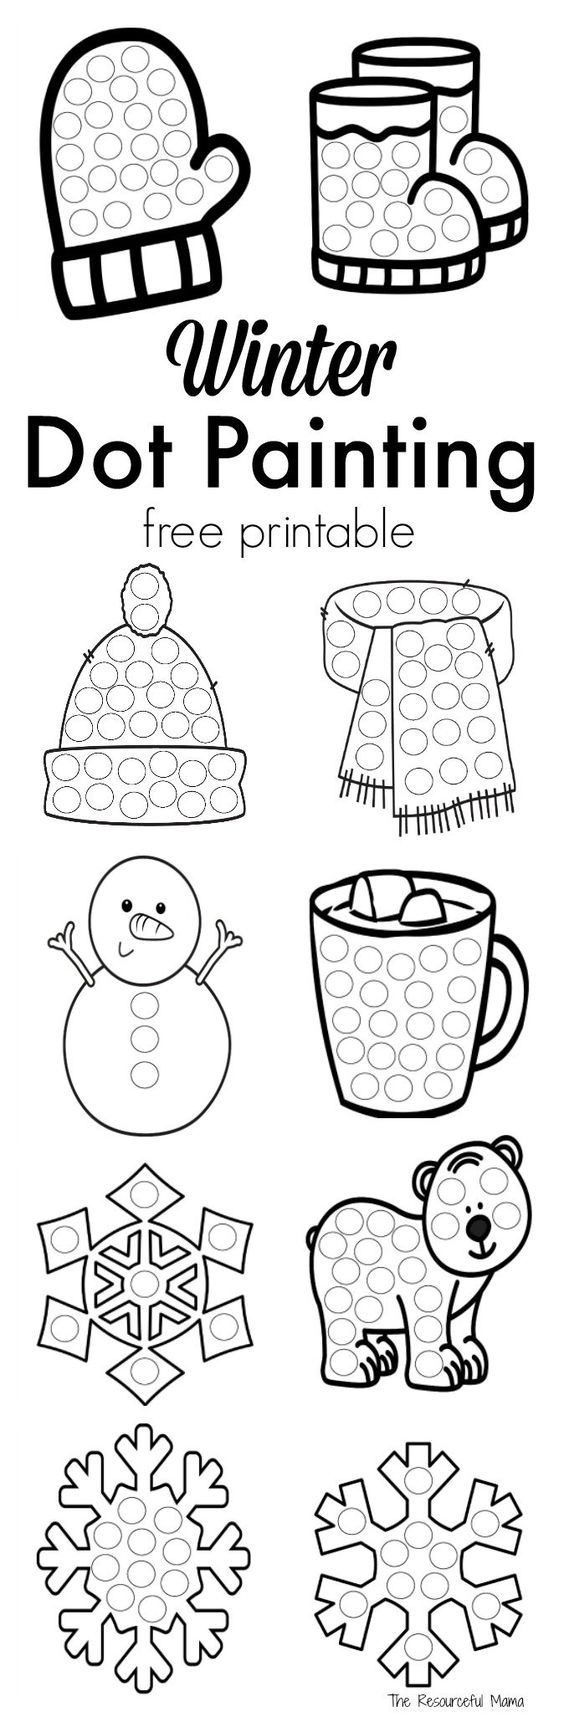 These winter dot painting printables are a great low mess no prep